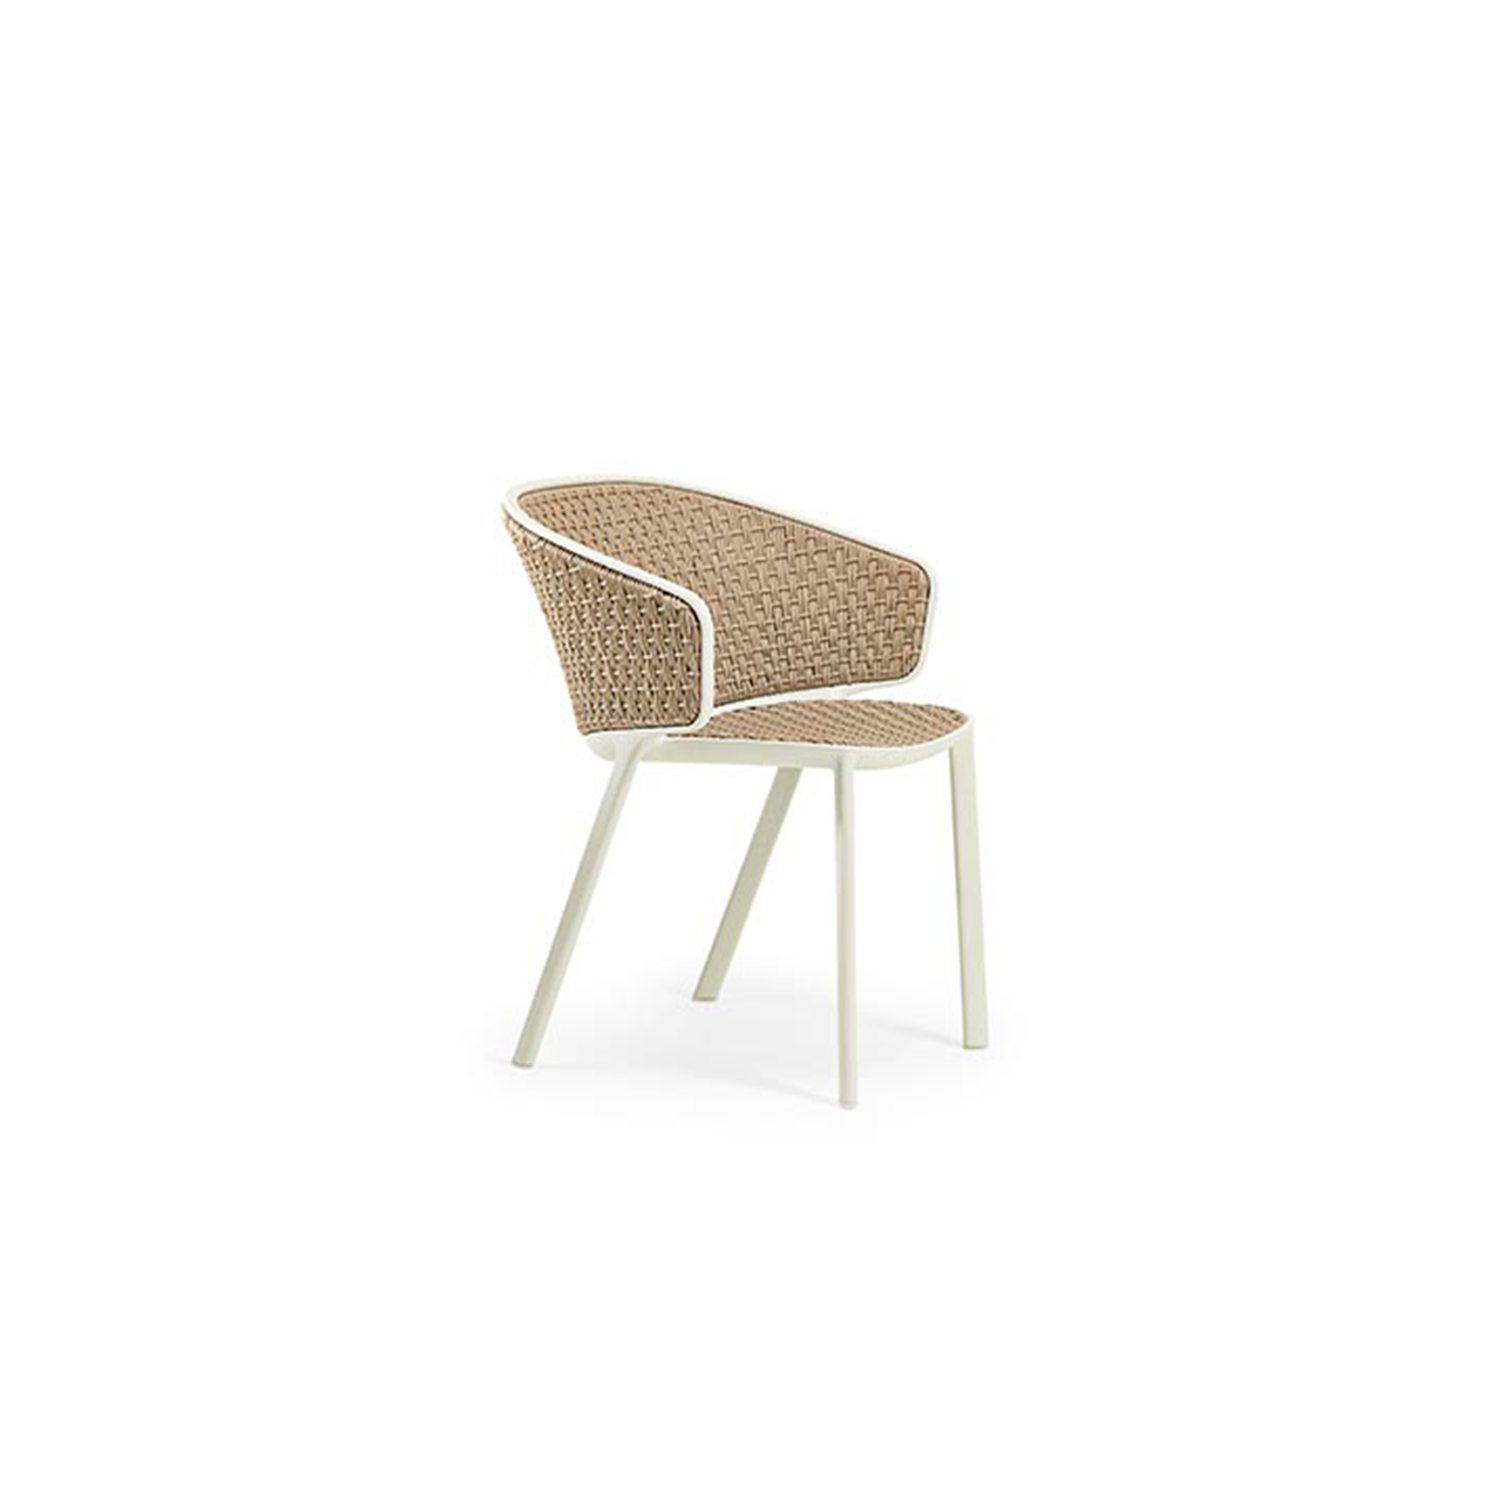 Pluvia Natwick Dining Armchair - Conceived and designed for outdoors, its harmonious lines, refined design and attention to details mean that Pluvia is also perfect for indoors and will become the ideal armchair to enhance the living area. Elegance and simplicity, together with design thinking that unites aesthetics and versatility, make Pluvia an armchair that 'interprets' the mood of its settings, and enhancing addition to any kind of open-air living space and a surprising one for interiors.  The rain cover is available at extra cost. Please enquire for more information.   Matter of Stuff